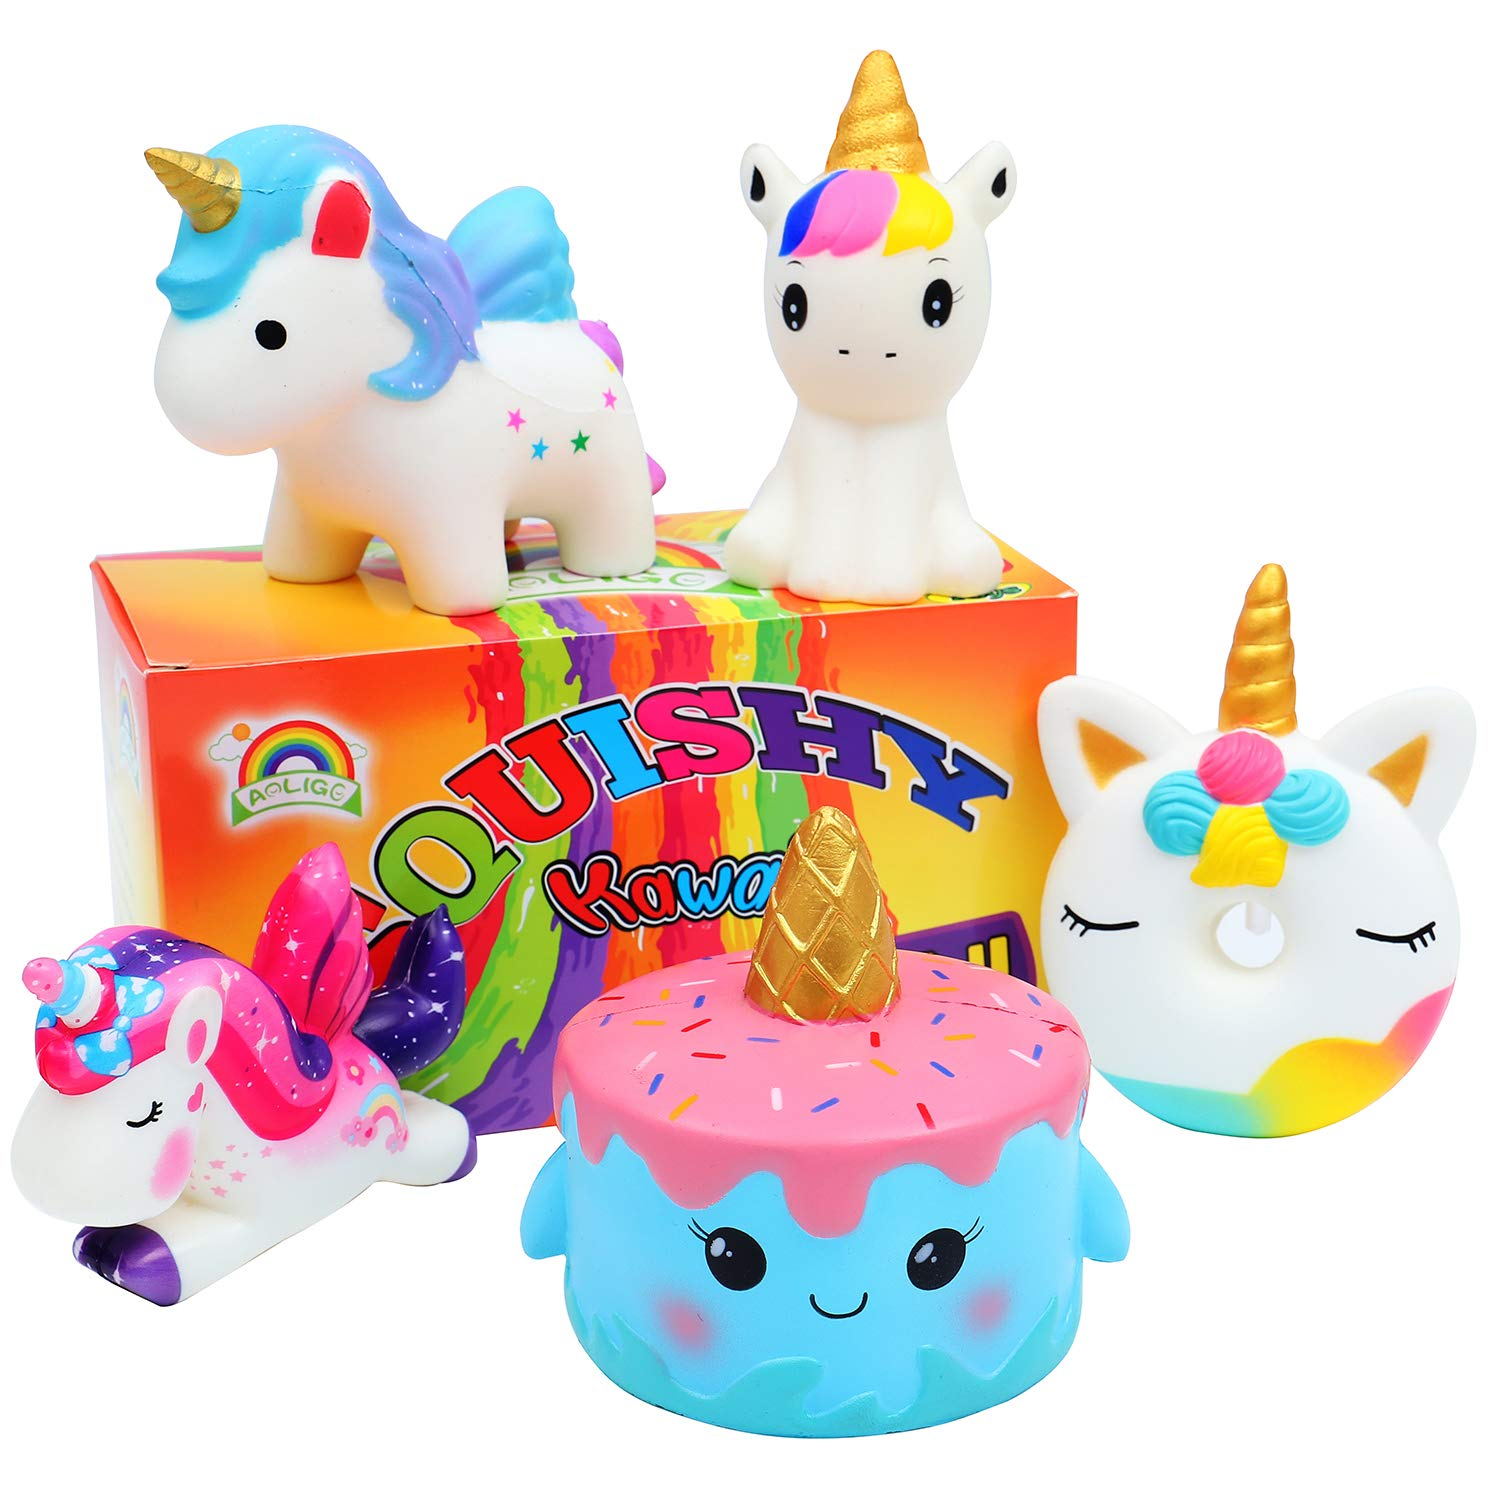 AOLIGE Kawaii Slow Rising Squishies Pack Unicorn Cake Donut Squishy Toys for Boys and Girls 5Pcs by AOLIGE (Image #1)